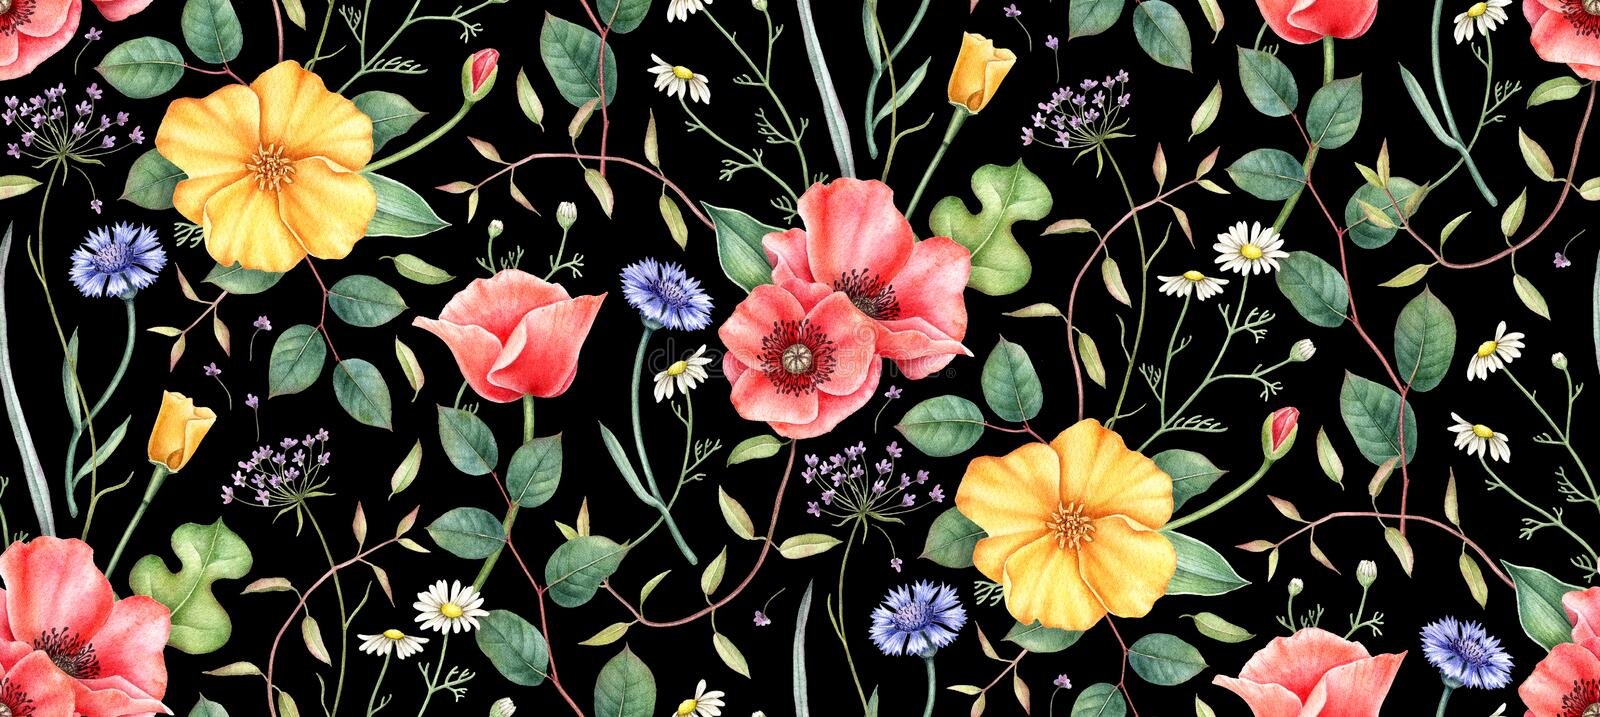 Seamless floral pattern with wildflowers on black background. Hand drawn watercolor illustration. royalty free illustration